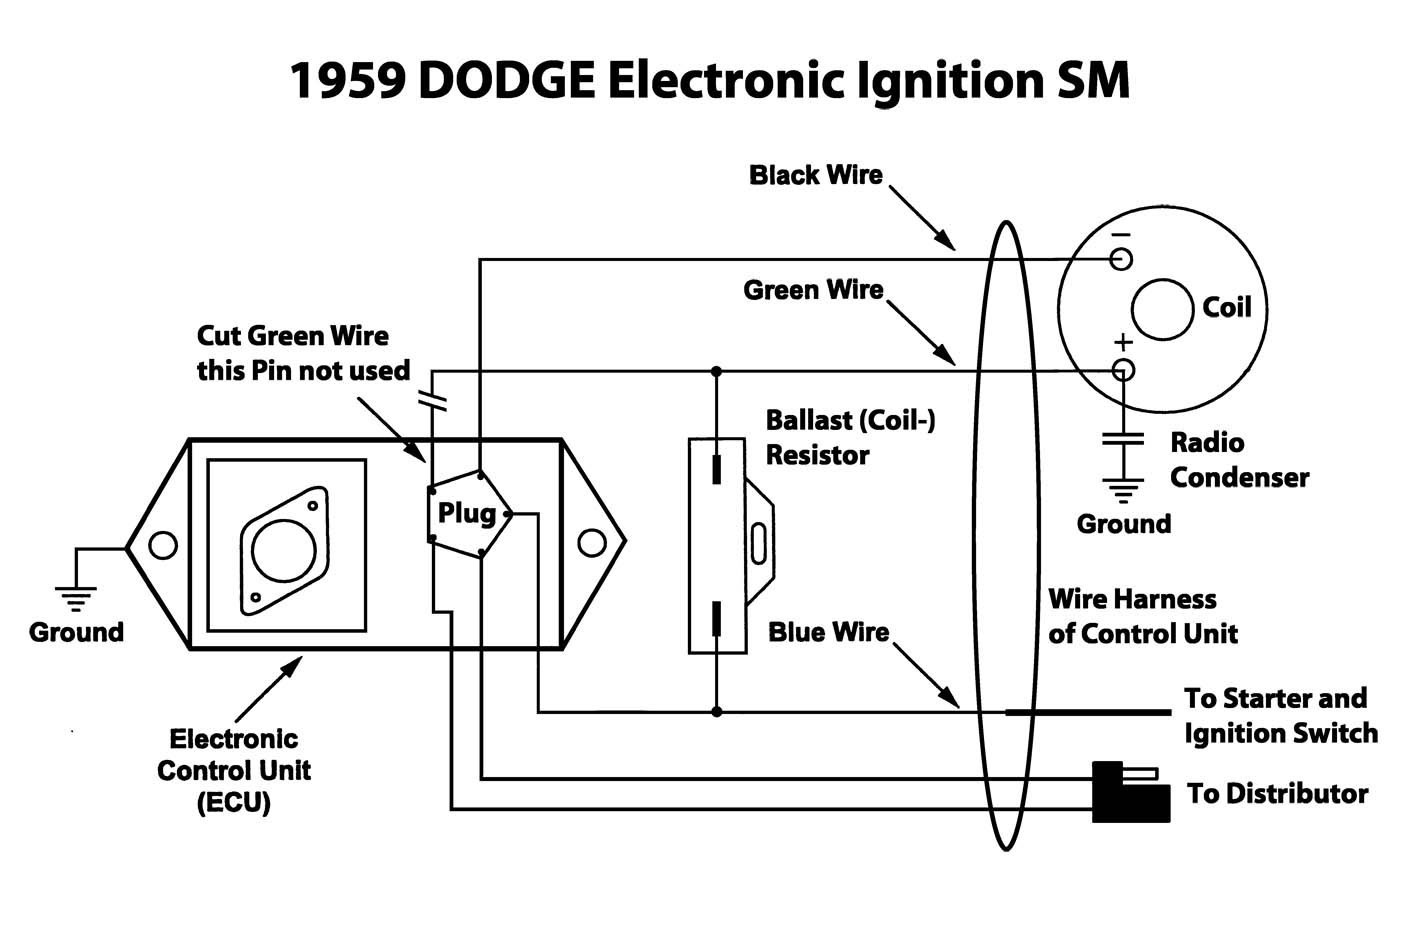 Chrysler Distributor Wiring Diagram Trusted Diagrams Dodge Mopar Ignition Switch Detailed Schematics 2002 Sebring